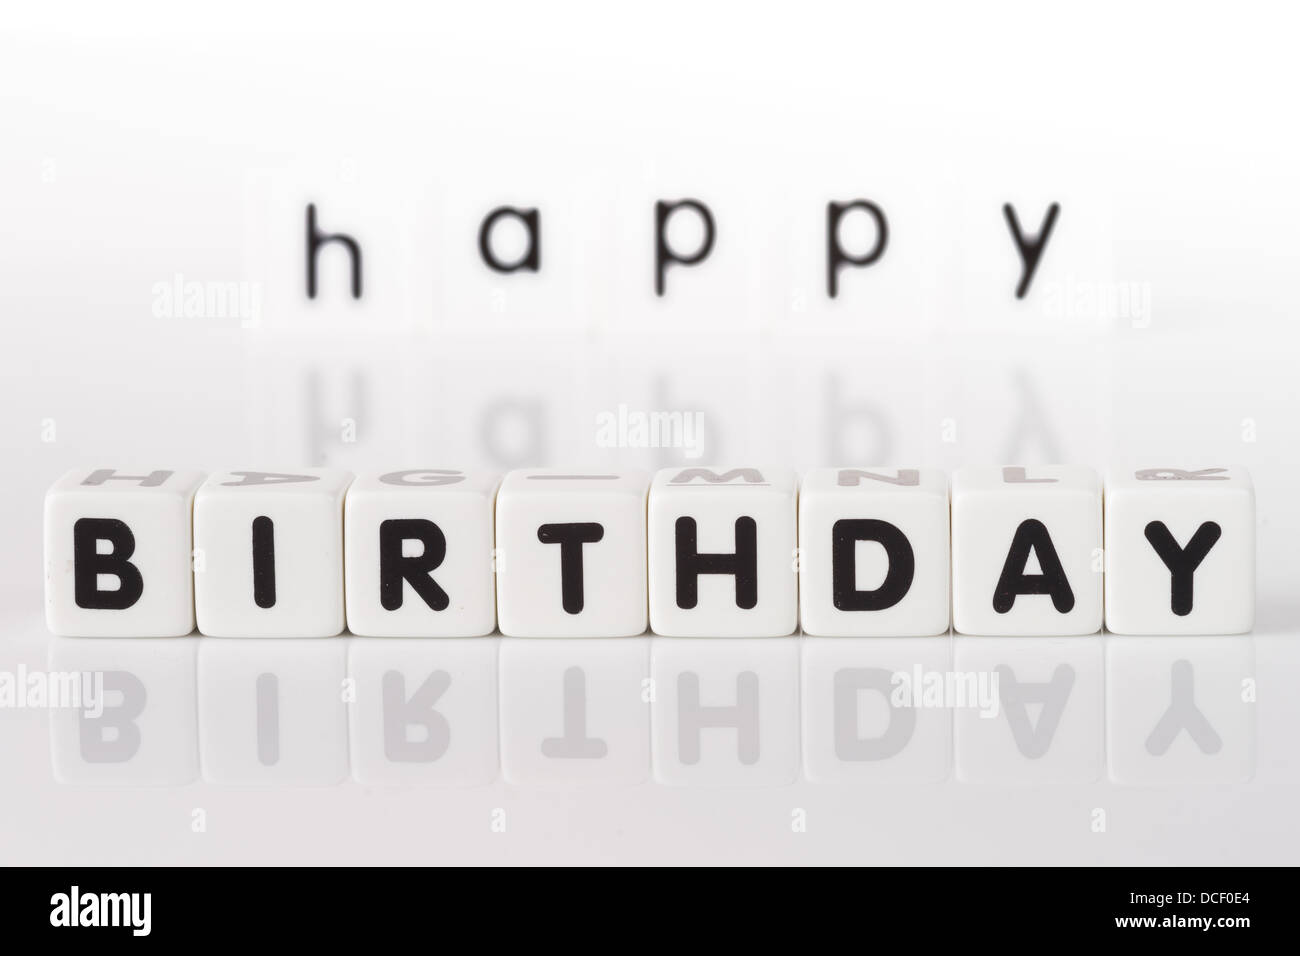 Happy Birthday spelled in game letters with reflection isolated on white background - Stock Image